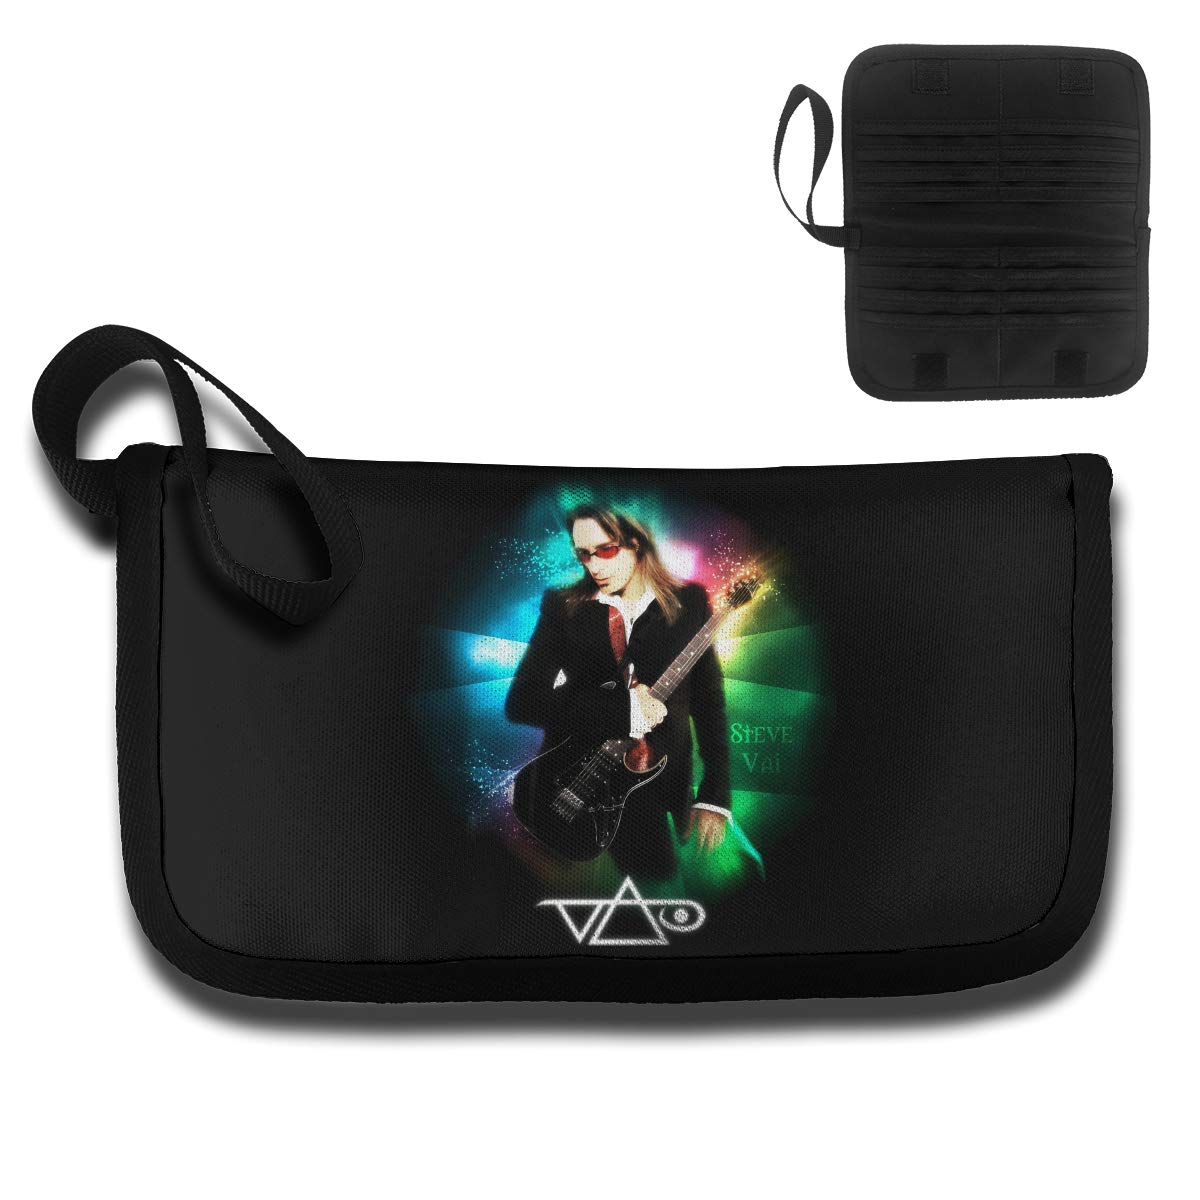 4.6oz KELTY S LANCE Steve Vai Durable Unisex Card Bag,with A Handle,Travel Wallet